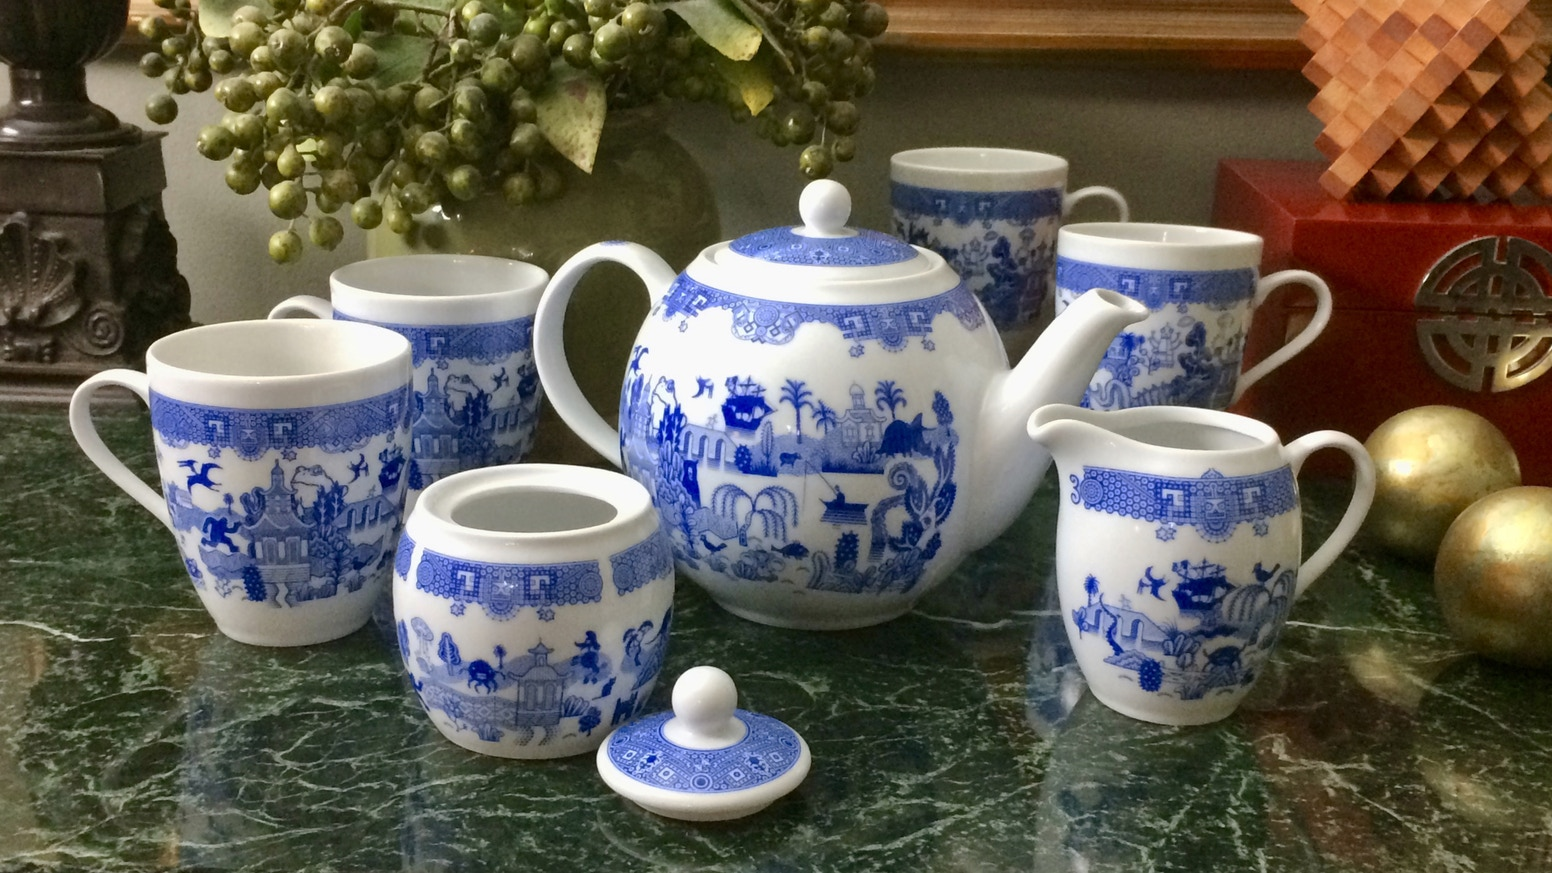 Astonishing porcelain tea set to remind you of how good you have it.